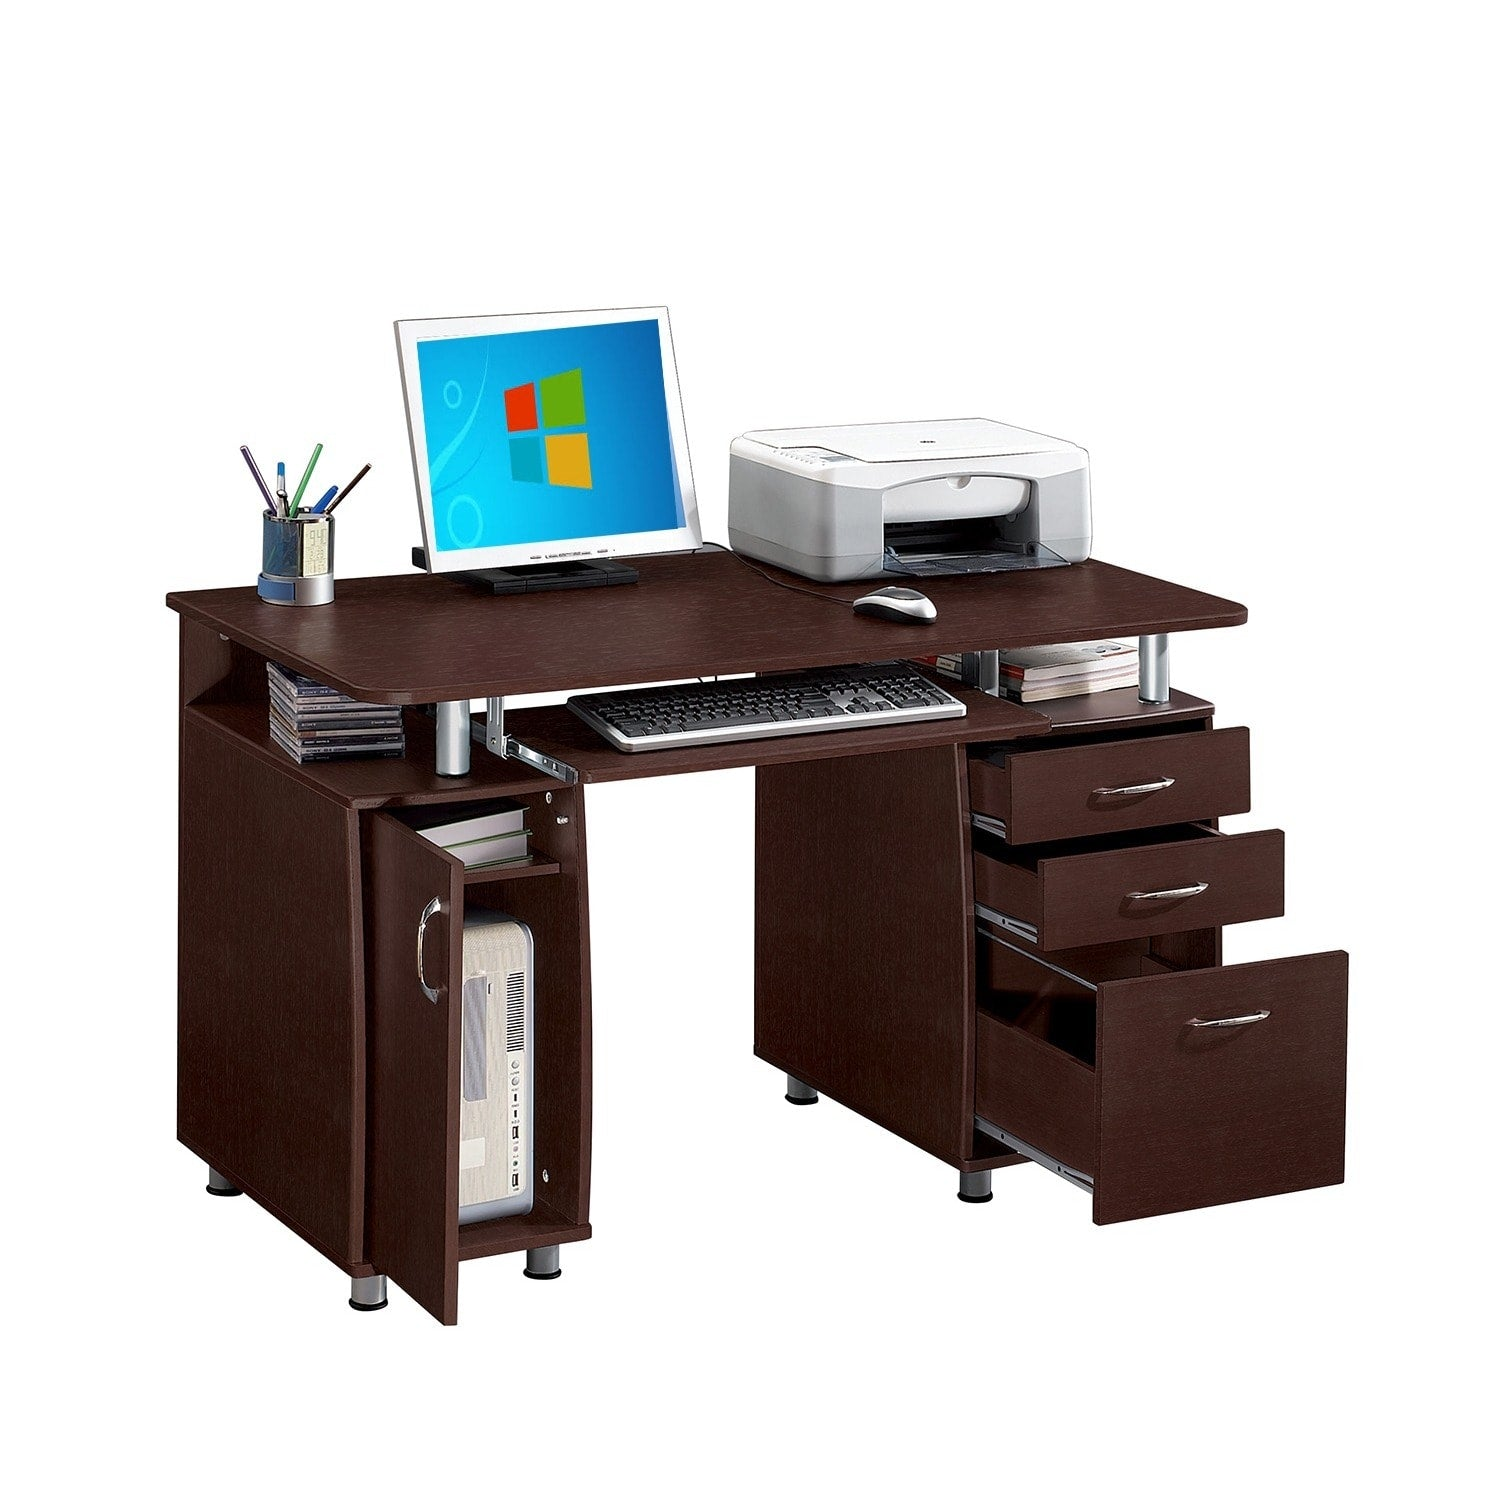 Multifunctional Office Desk with File Cabinet